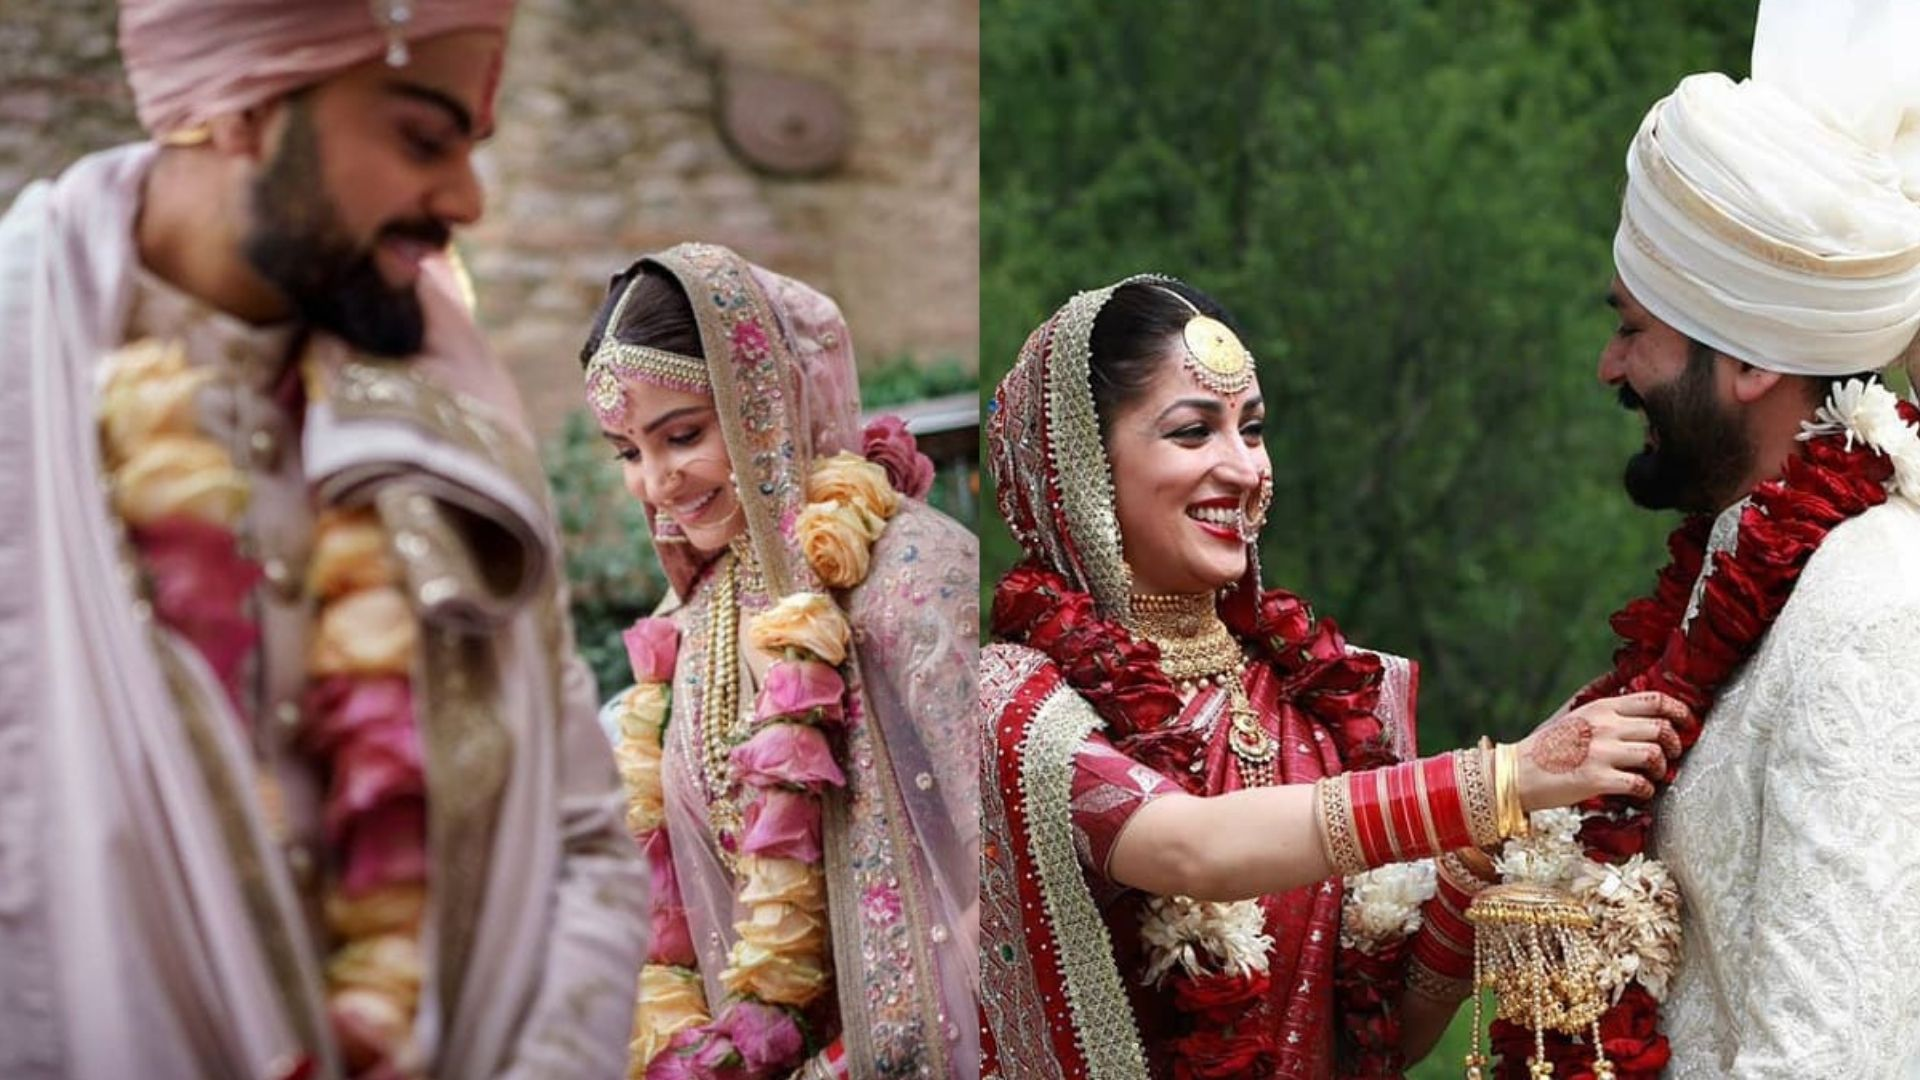 Anushka Sharma, Yami Gautam And Others- Bollywood Celebrities Who Tied The Knot In A Hush-Hush Ceremony